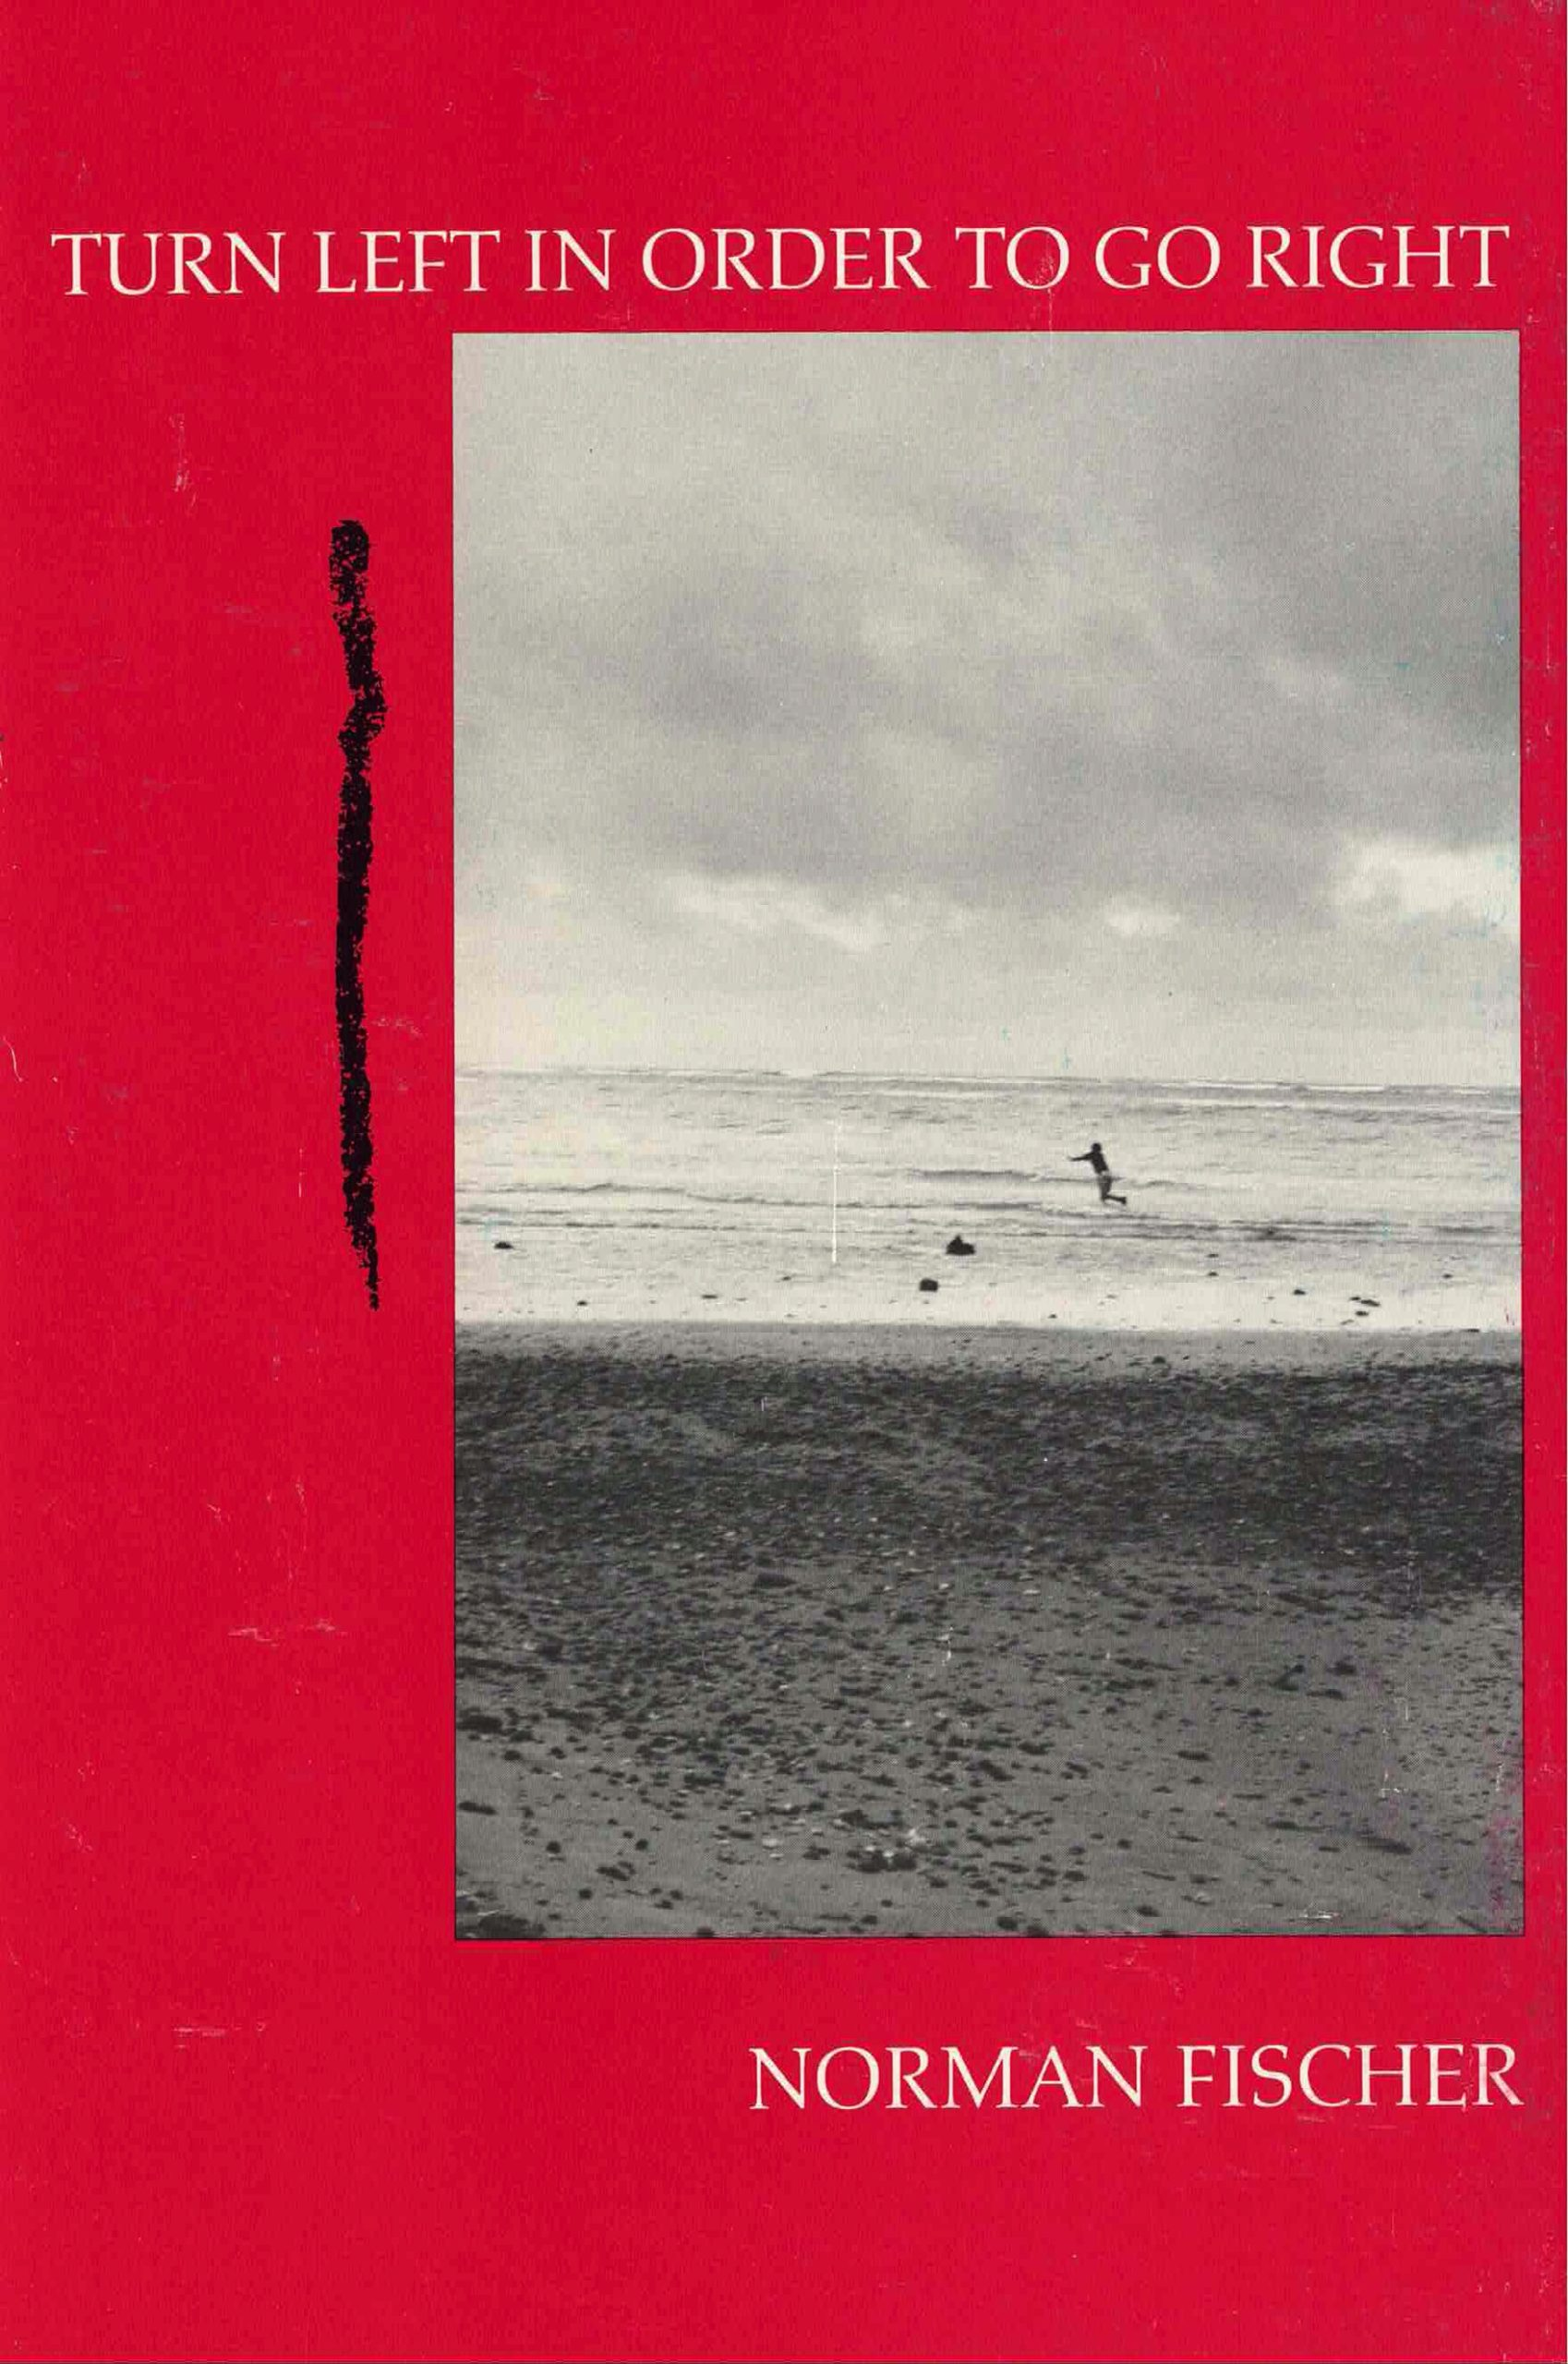 cover of Turn Left In Order to Go Right by Norman Fischer, red bacground with vertical rectangular b&w photo of a beach and a person jumping in the ocean in the distance